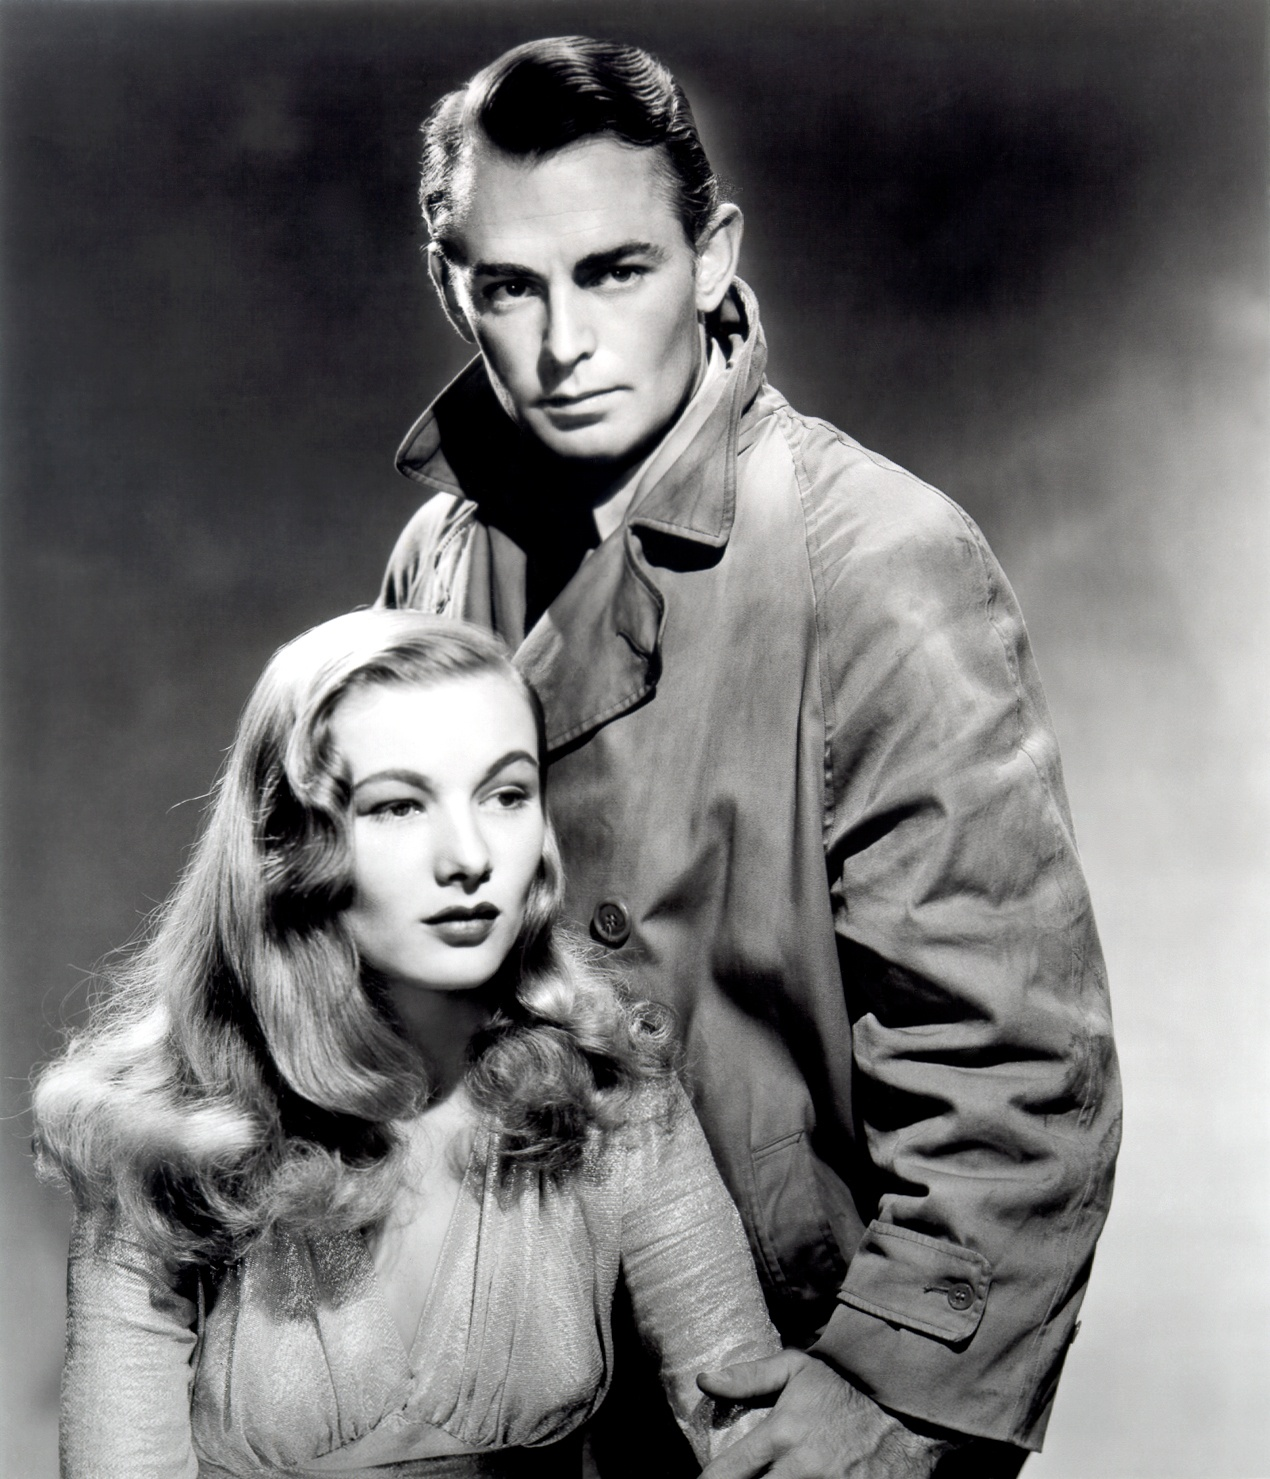 Veronica Lake in This Gun for Hire With Alan Ladd